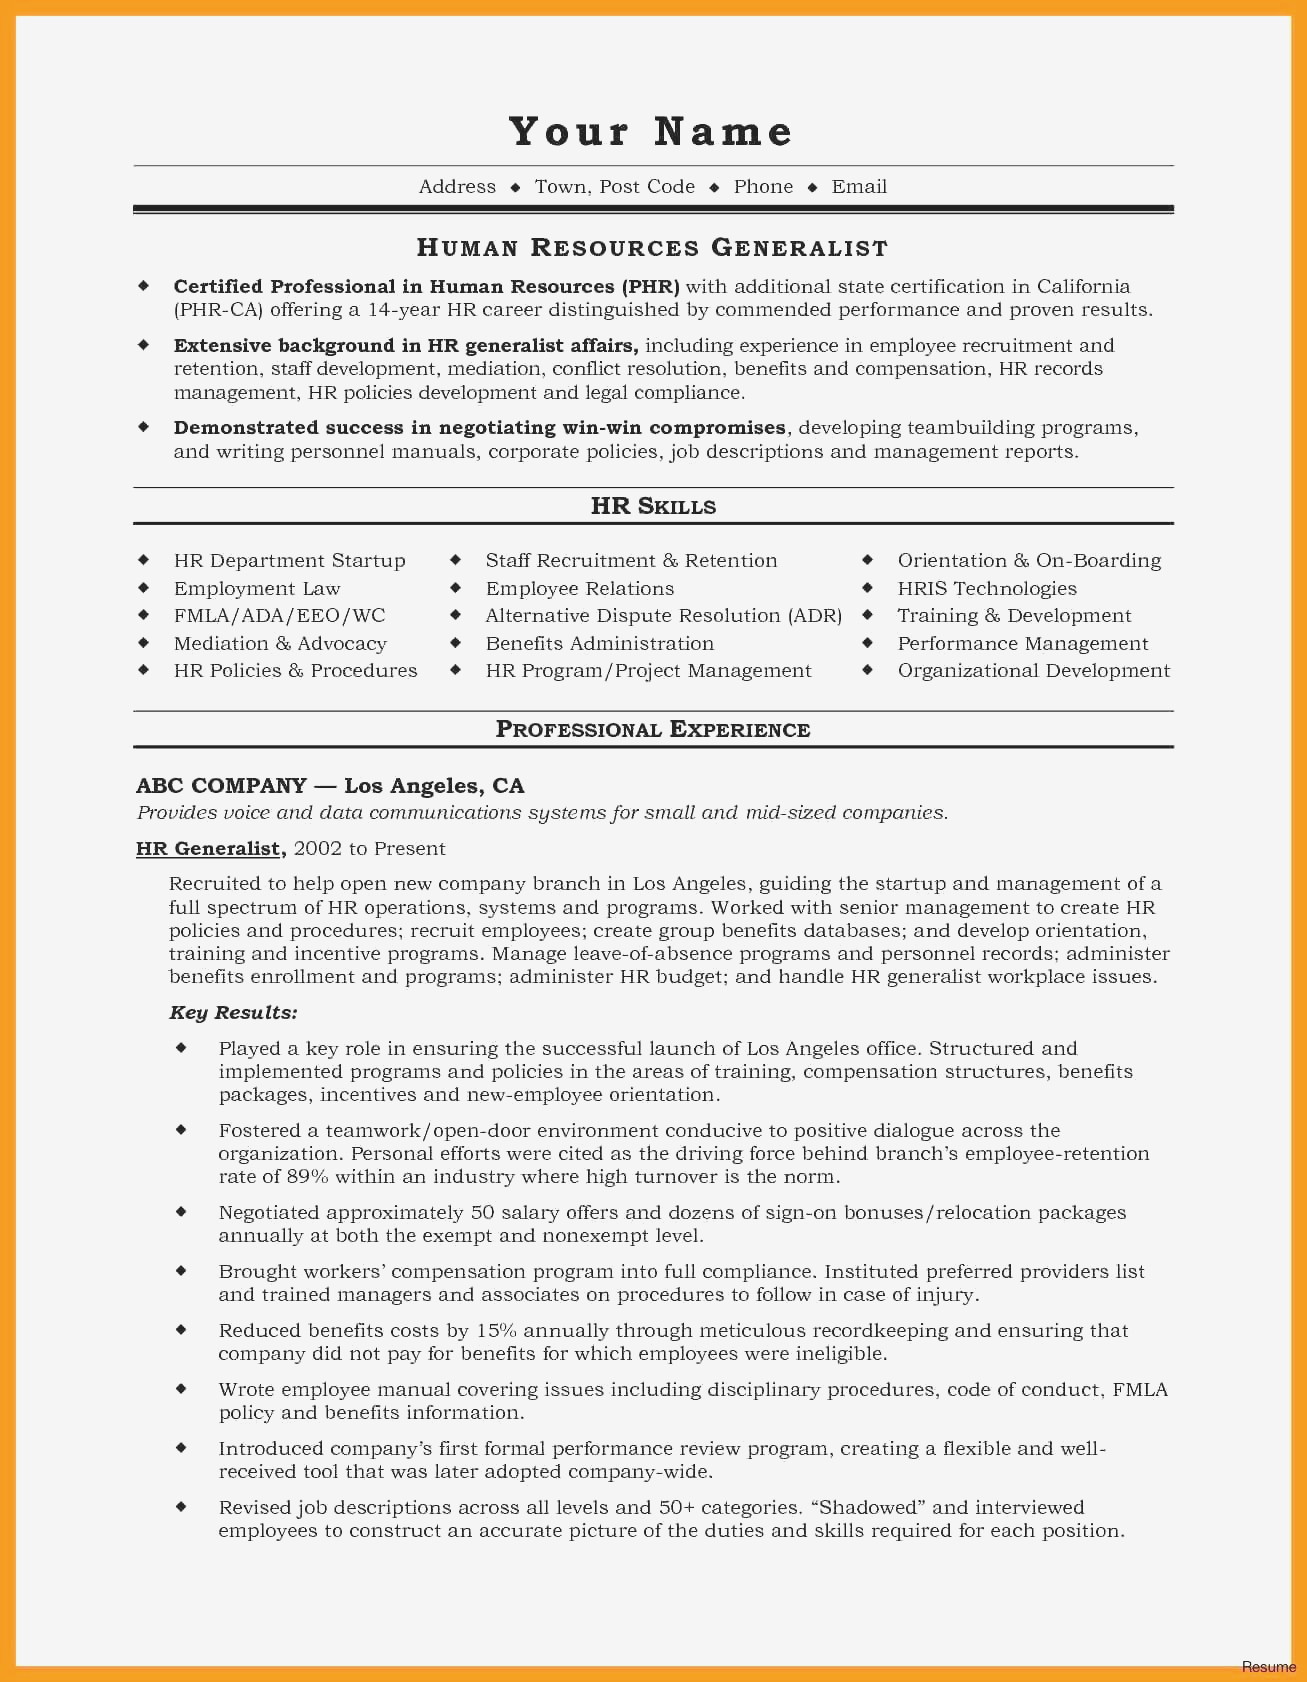 hr skills for resume example-Resume Experience Example Fresh Resume for It Job Unique Best Examples Resumes Ecologist Resume 0d 19-n